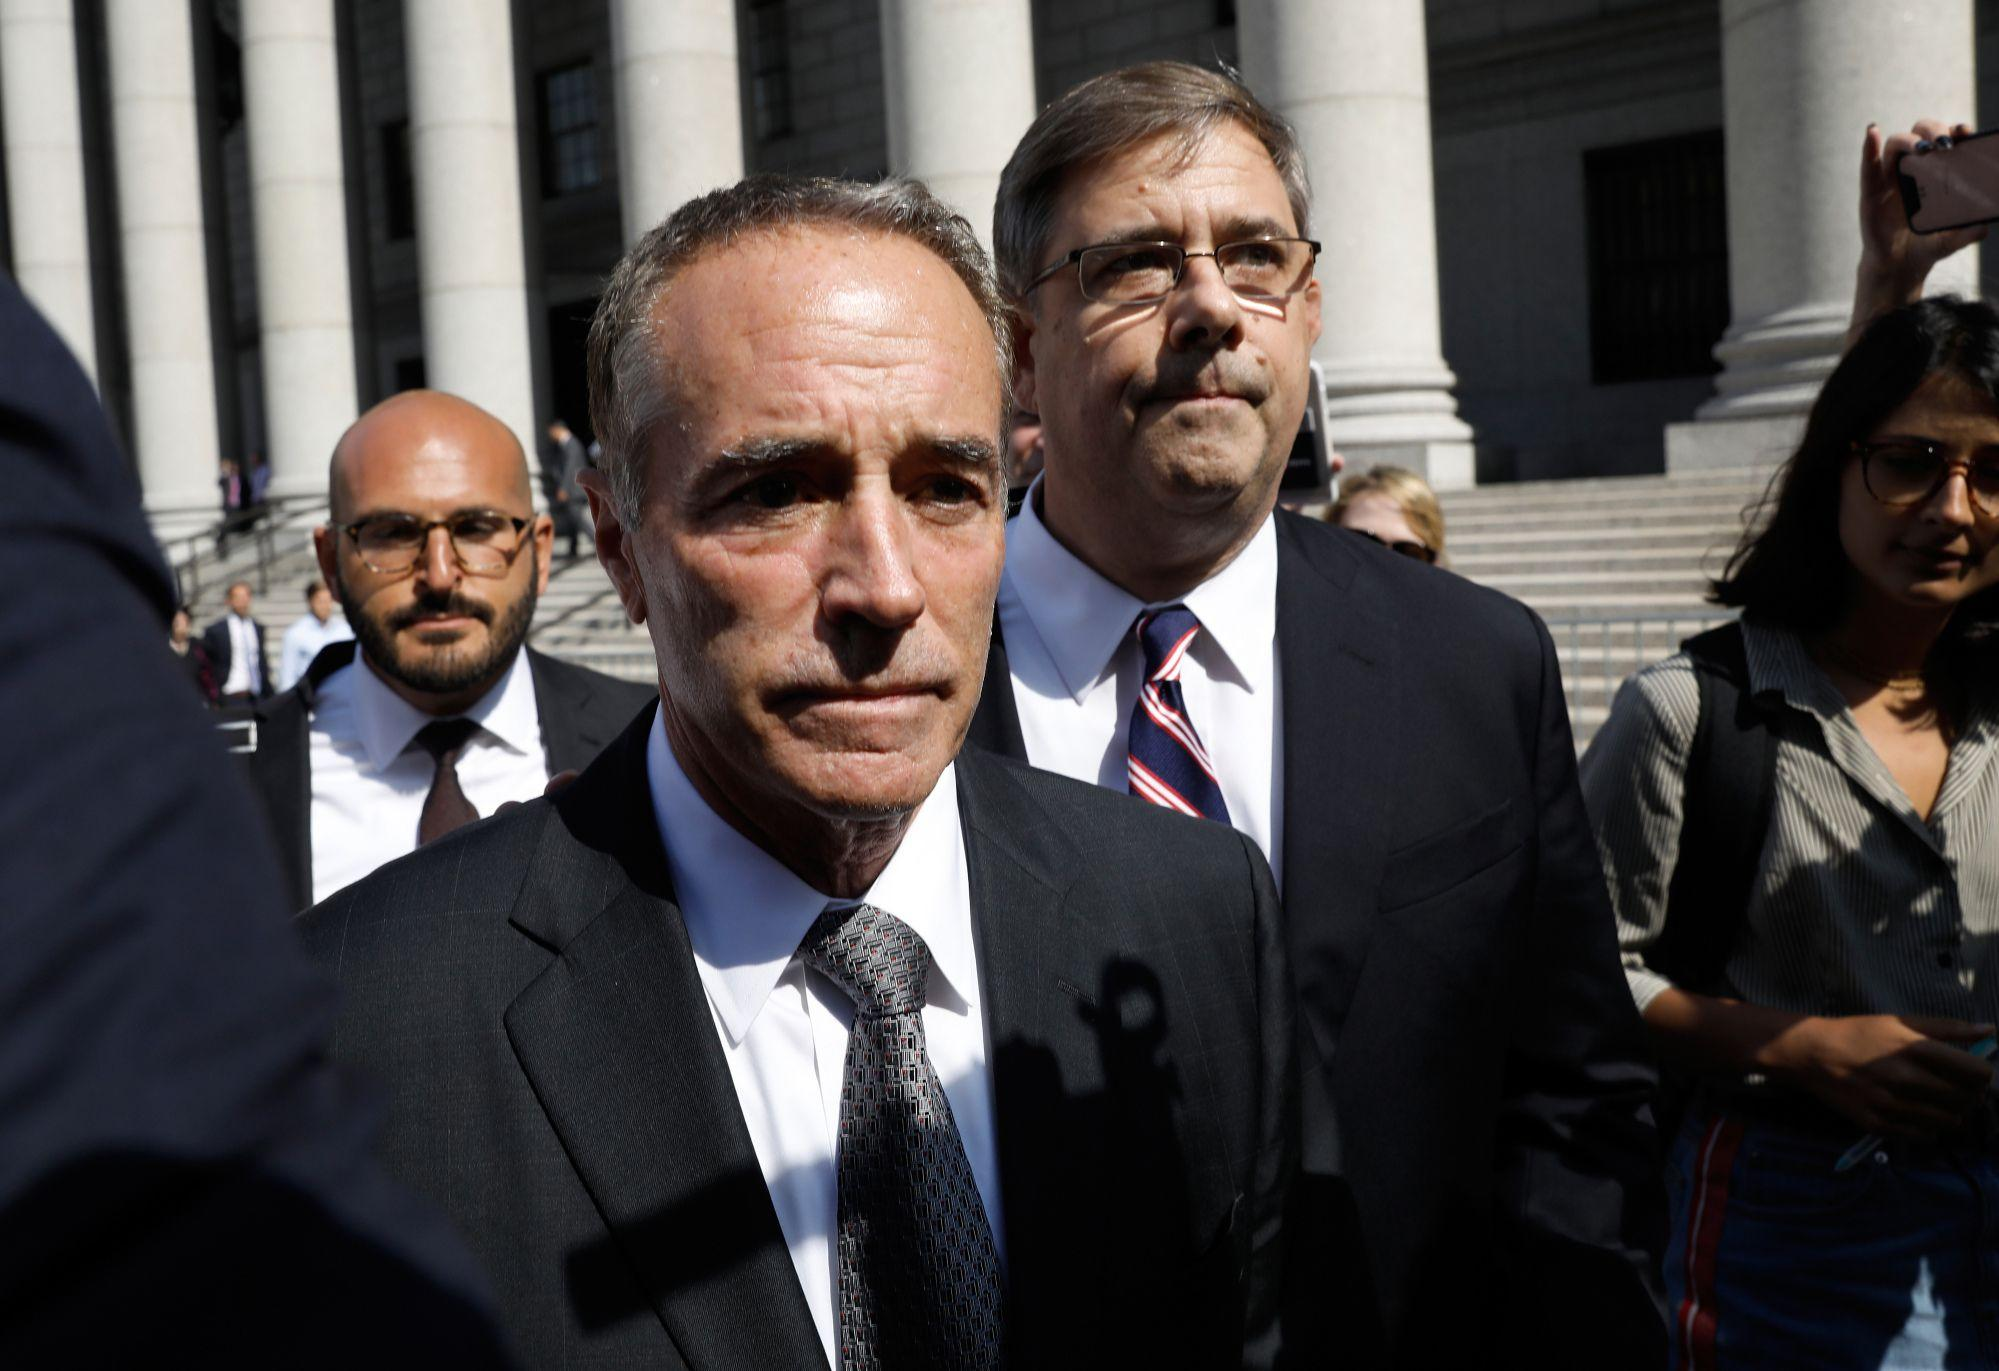 Prosecutors seek 5-year prison sentence for Former Rep. Chris Collins